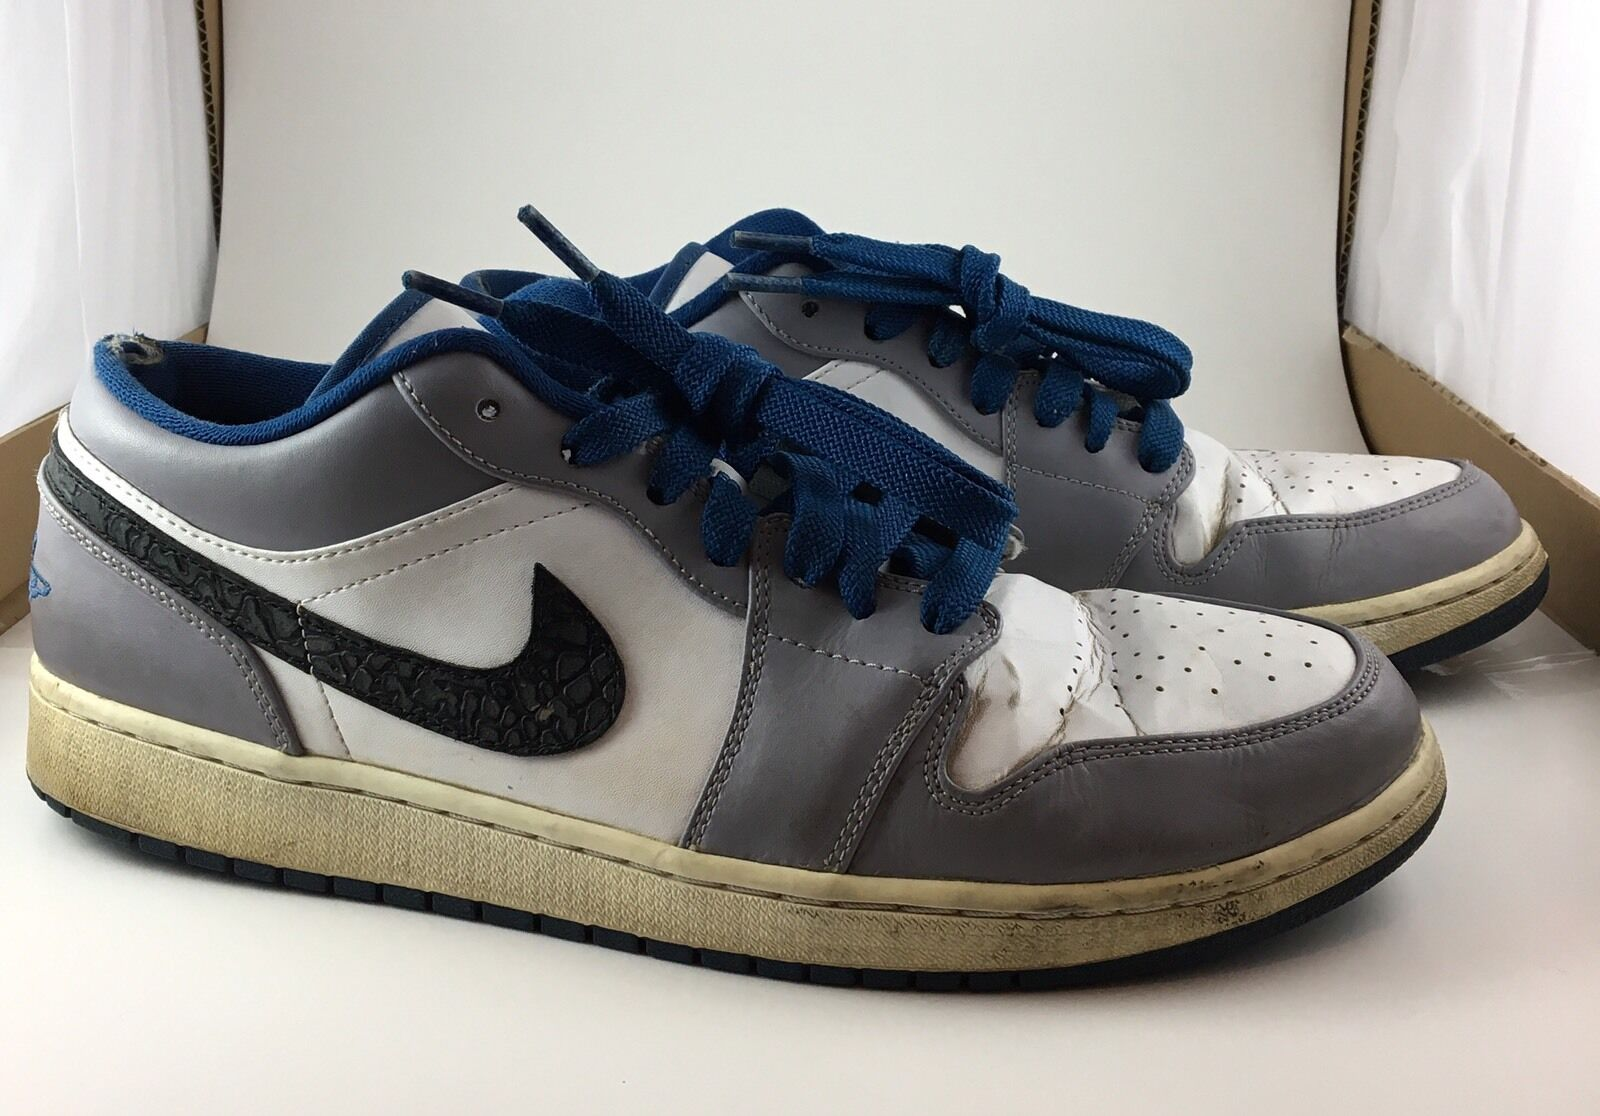 best-selling model of the brand Nike Air Jordan 1 Low White True Blue Cement Grey Black Shoes Comfortable